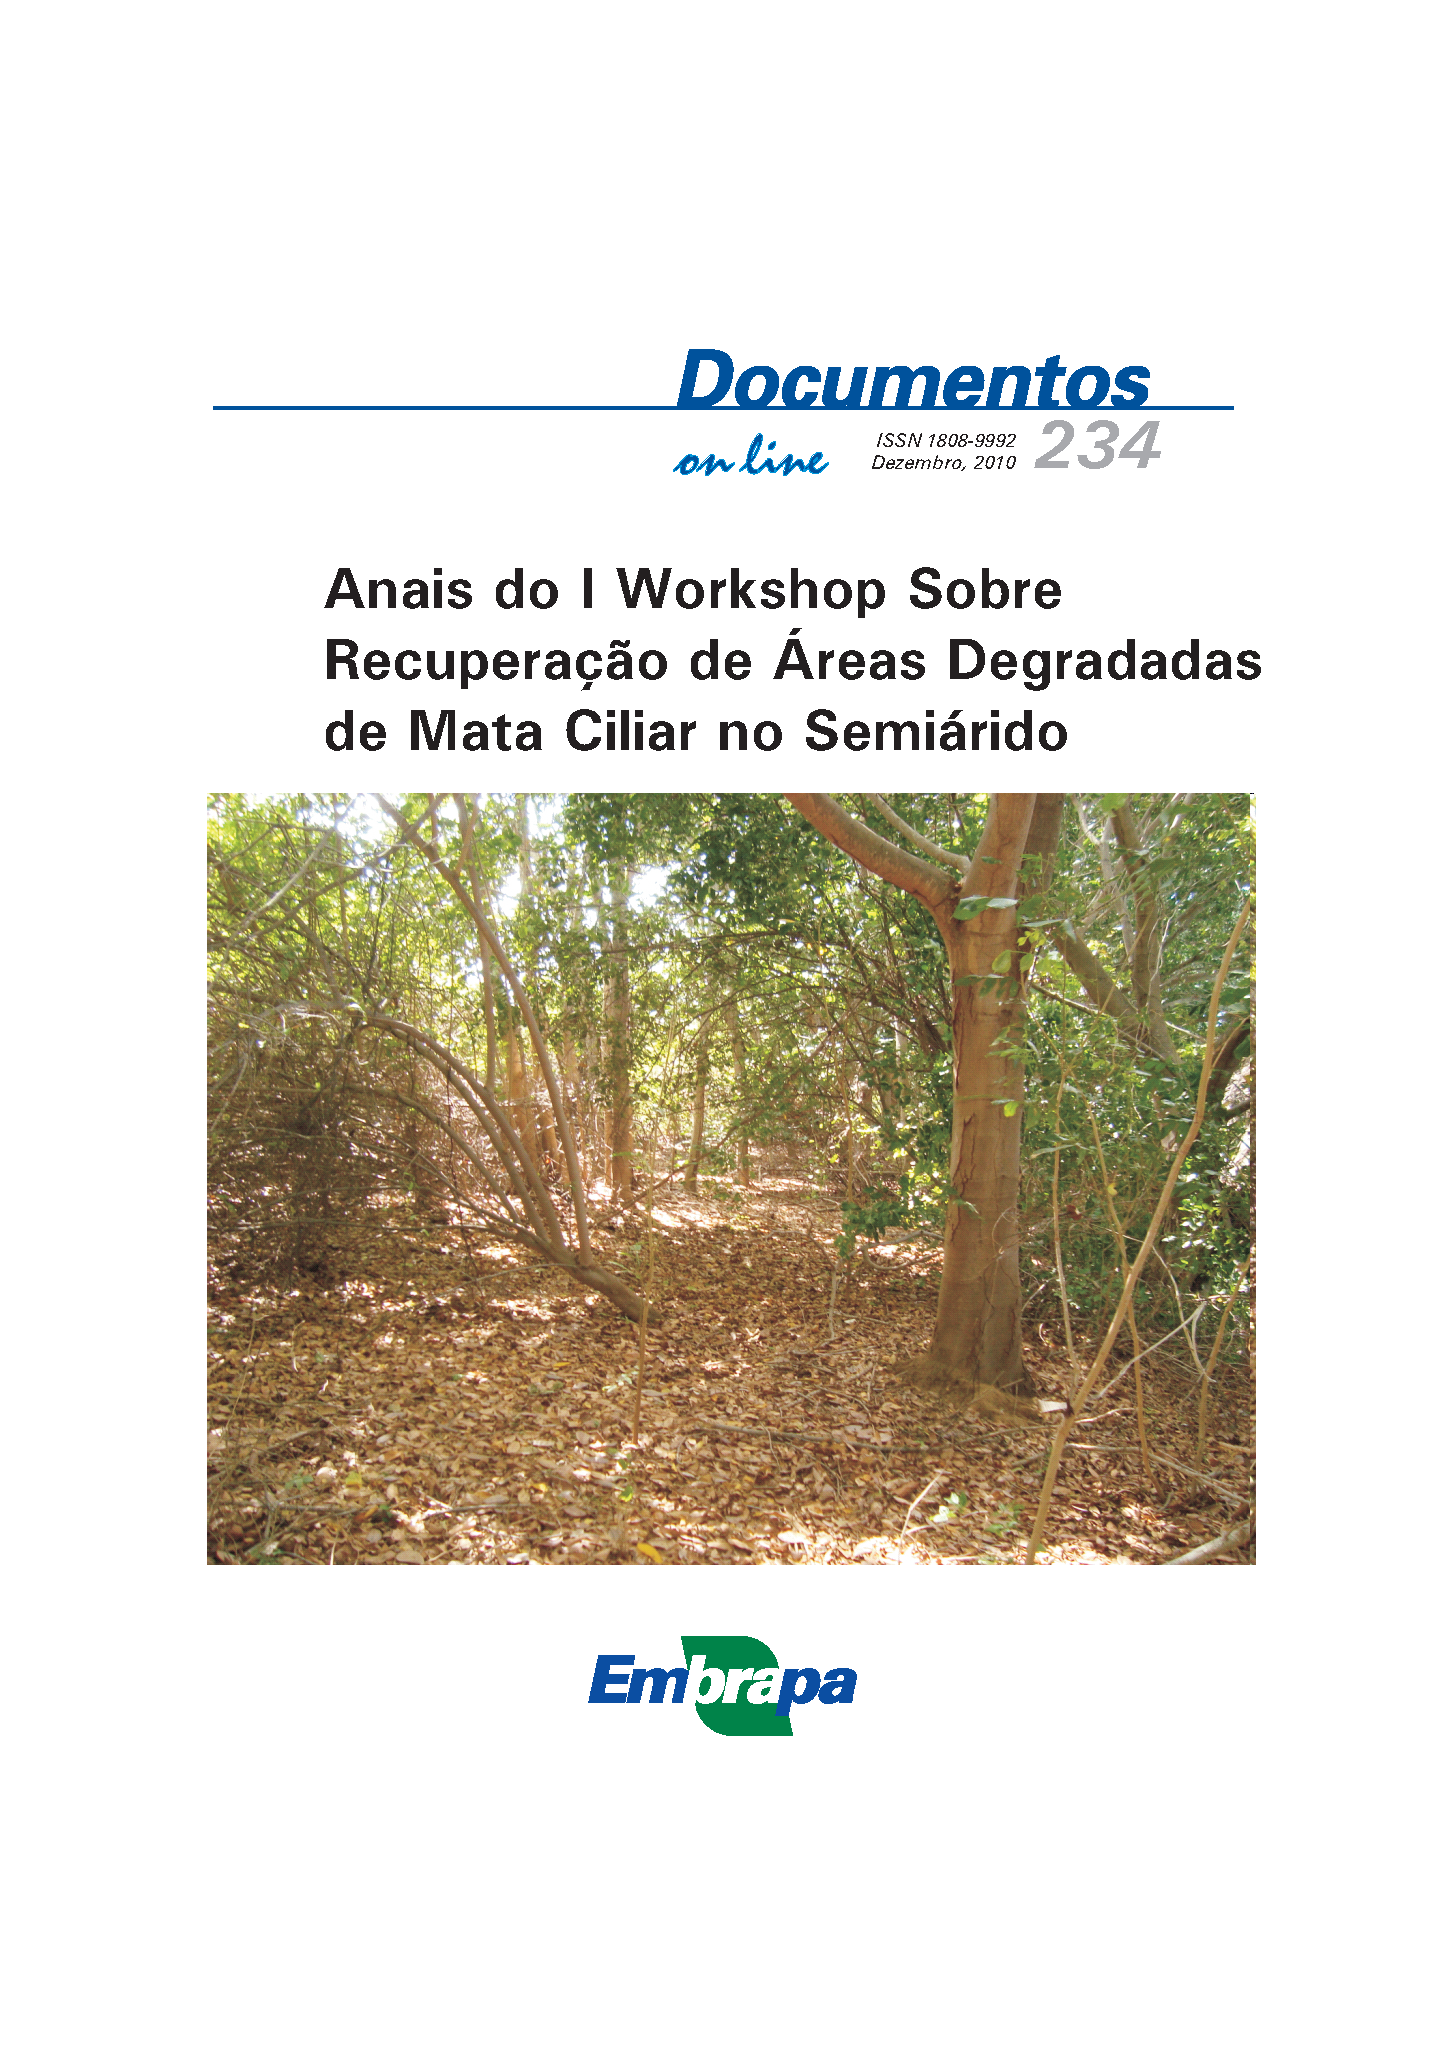 Capa da Anais do I Workshop sobre Recuperação de Áreas Degradadas de Mata Ciliar no Semiárido